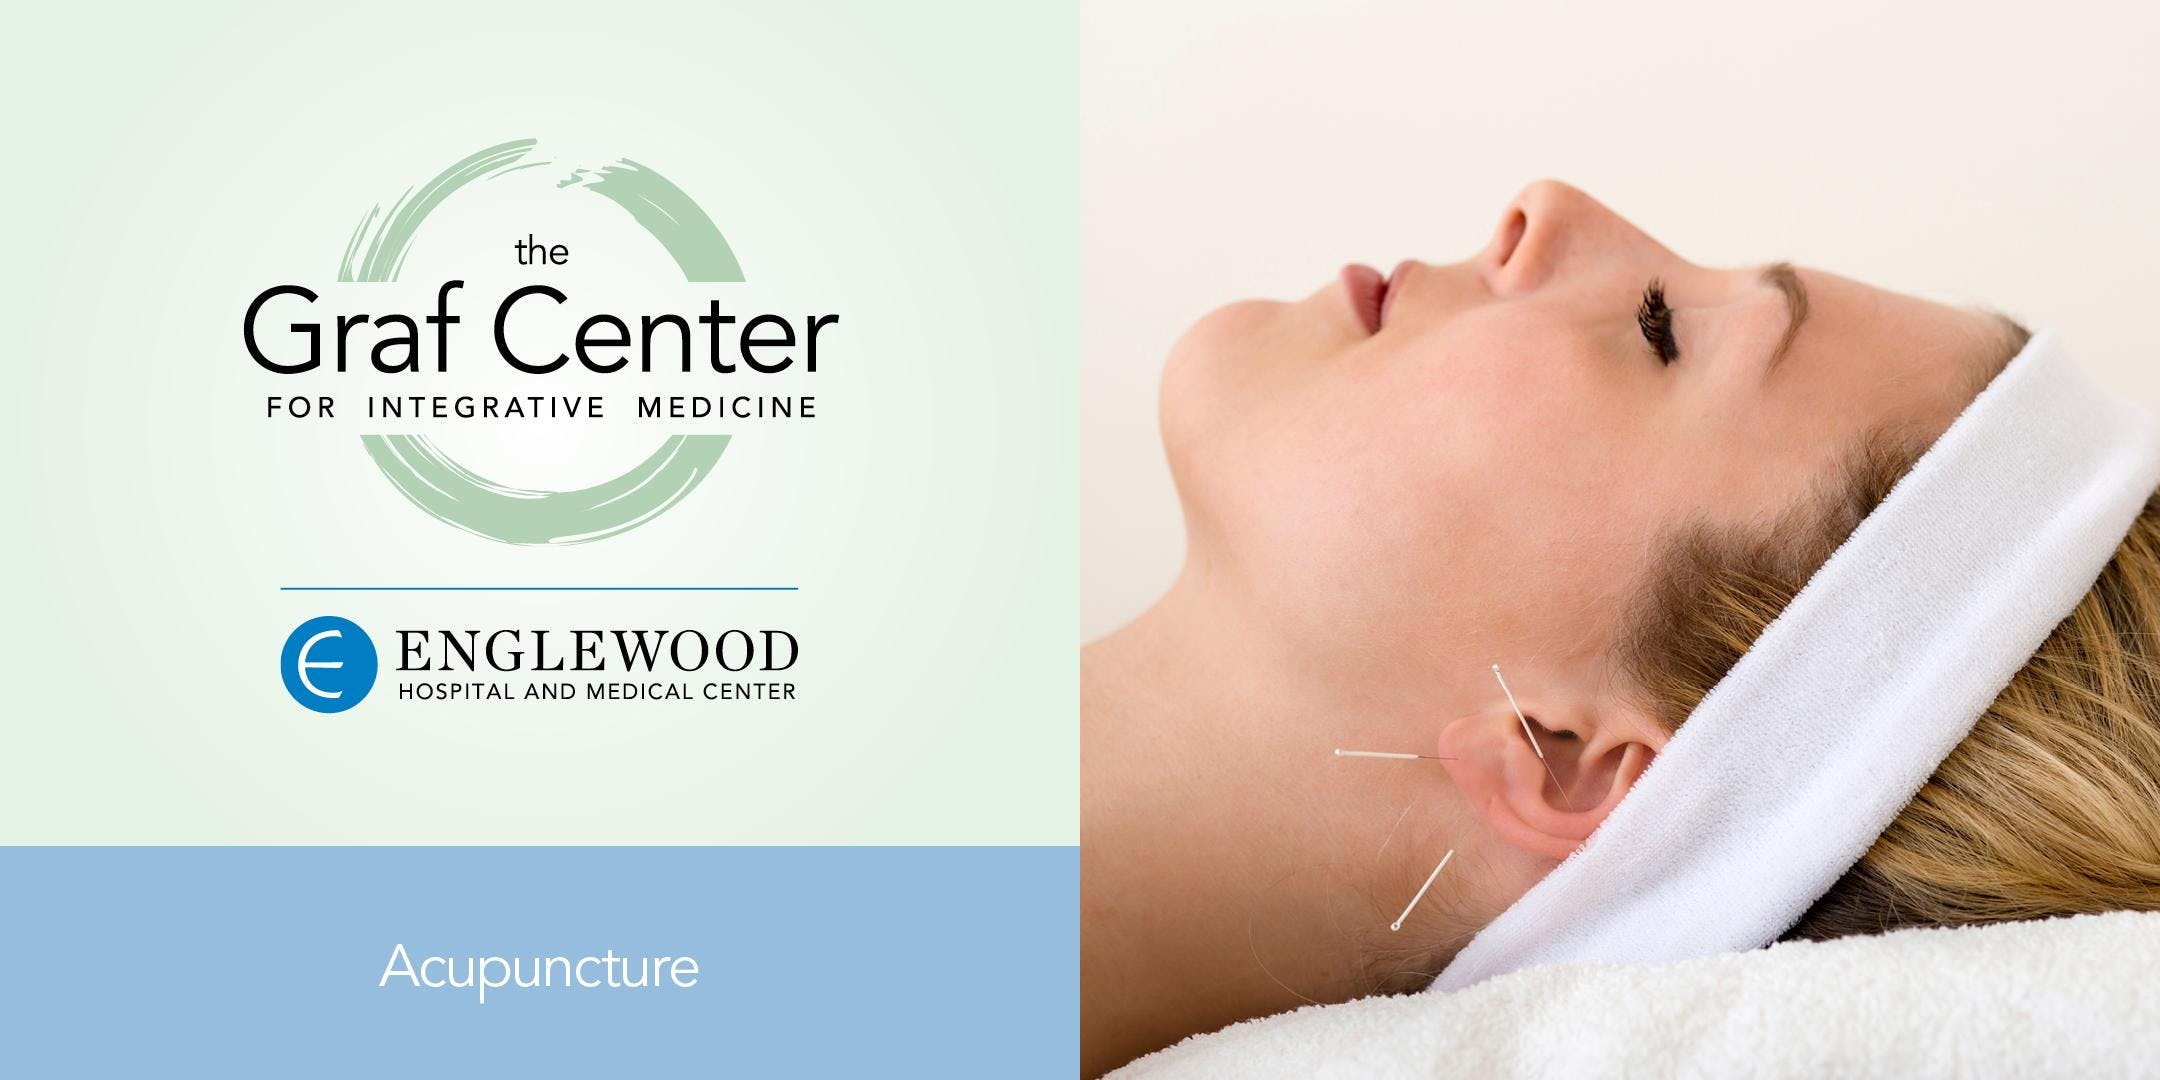 More info: Acupuncture for Self-Care